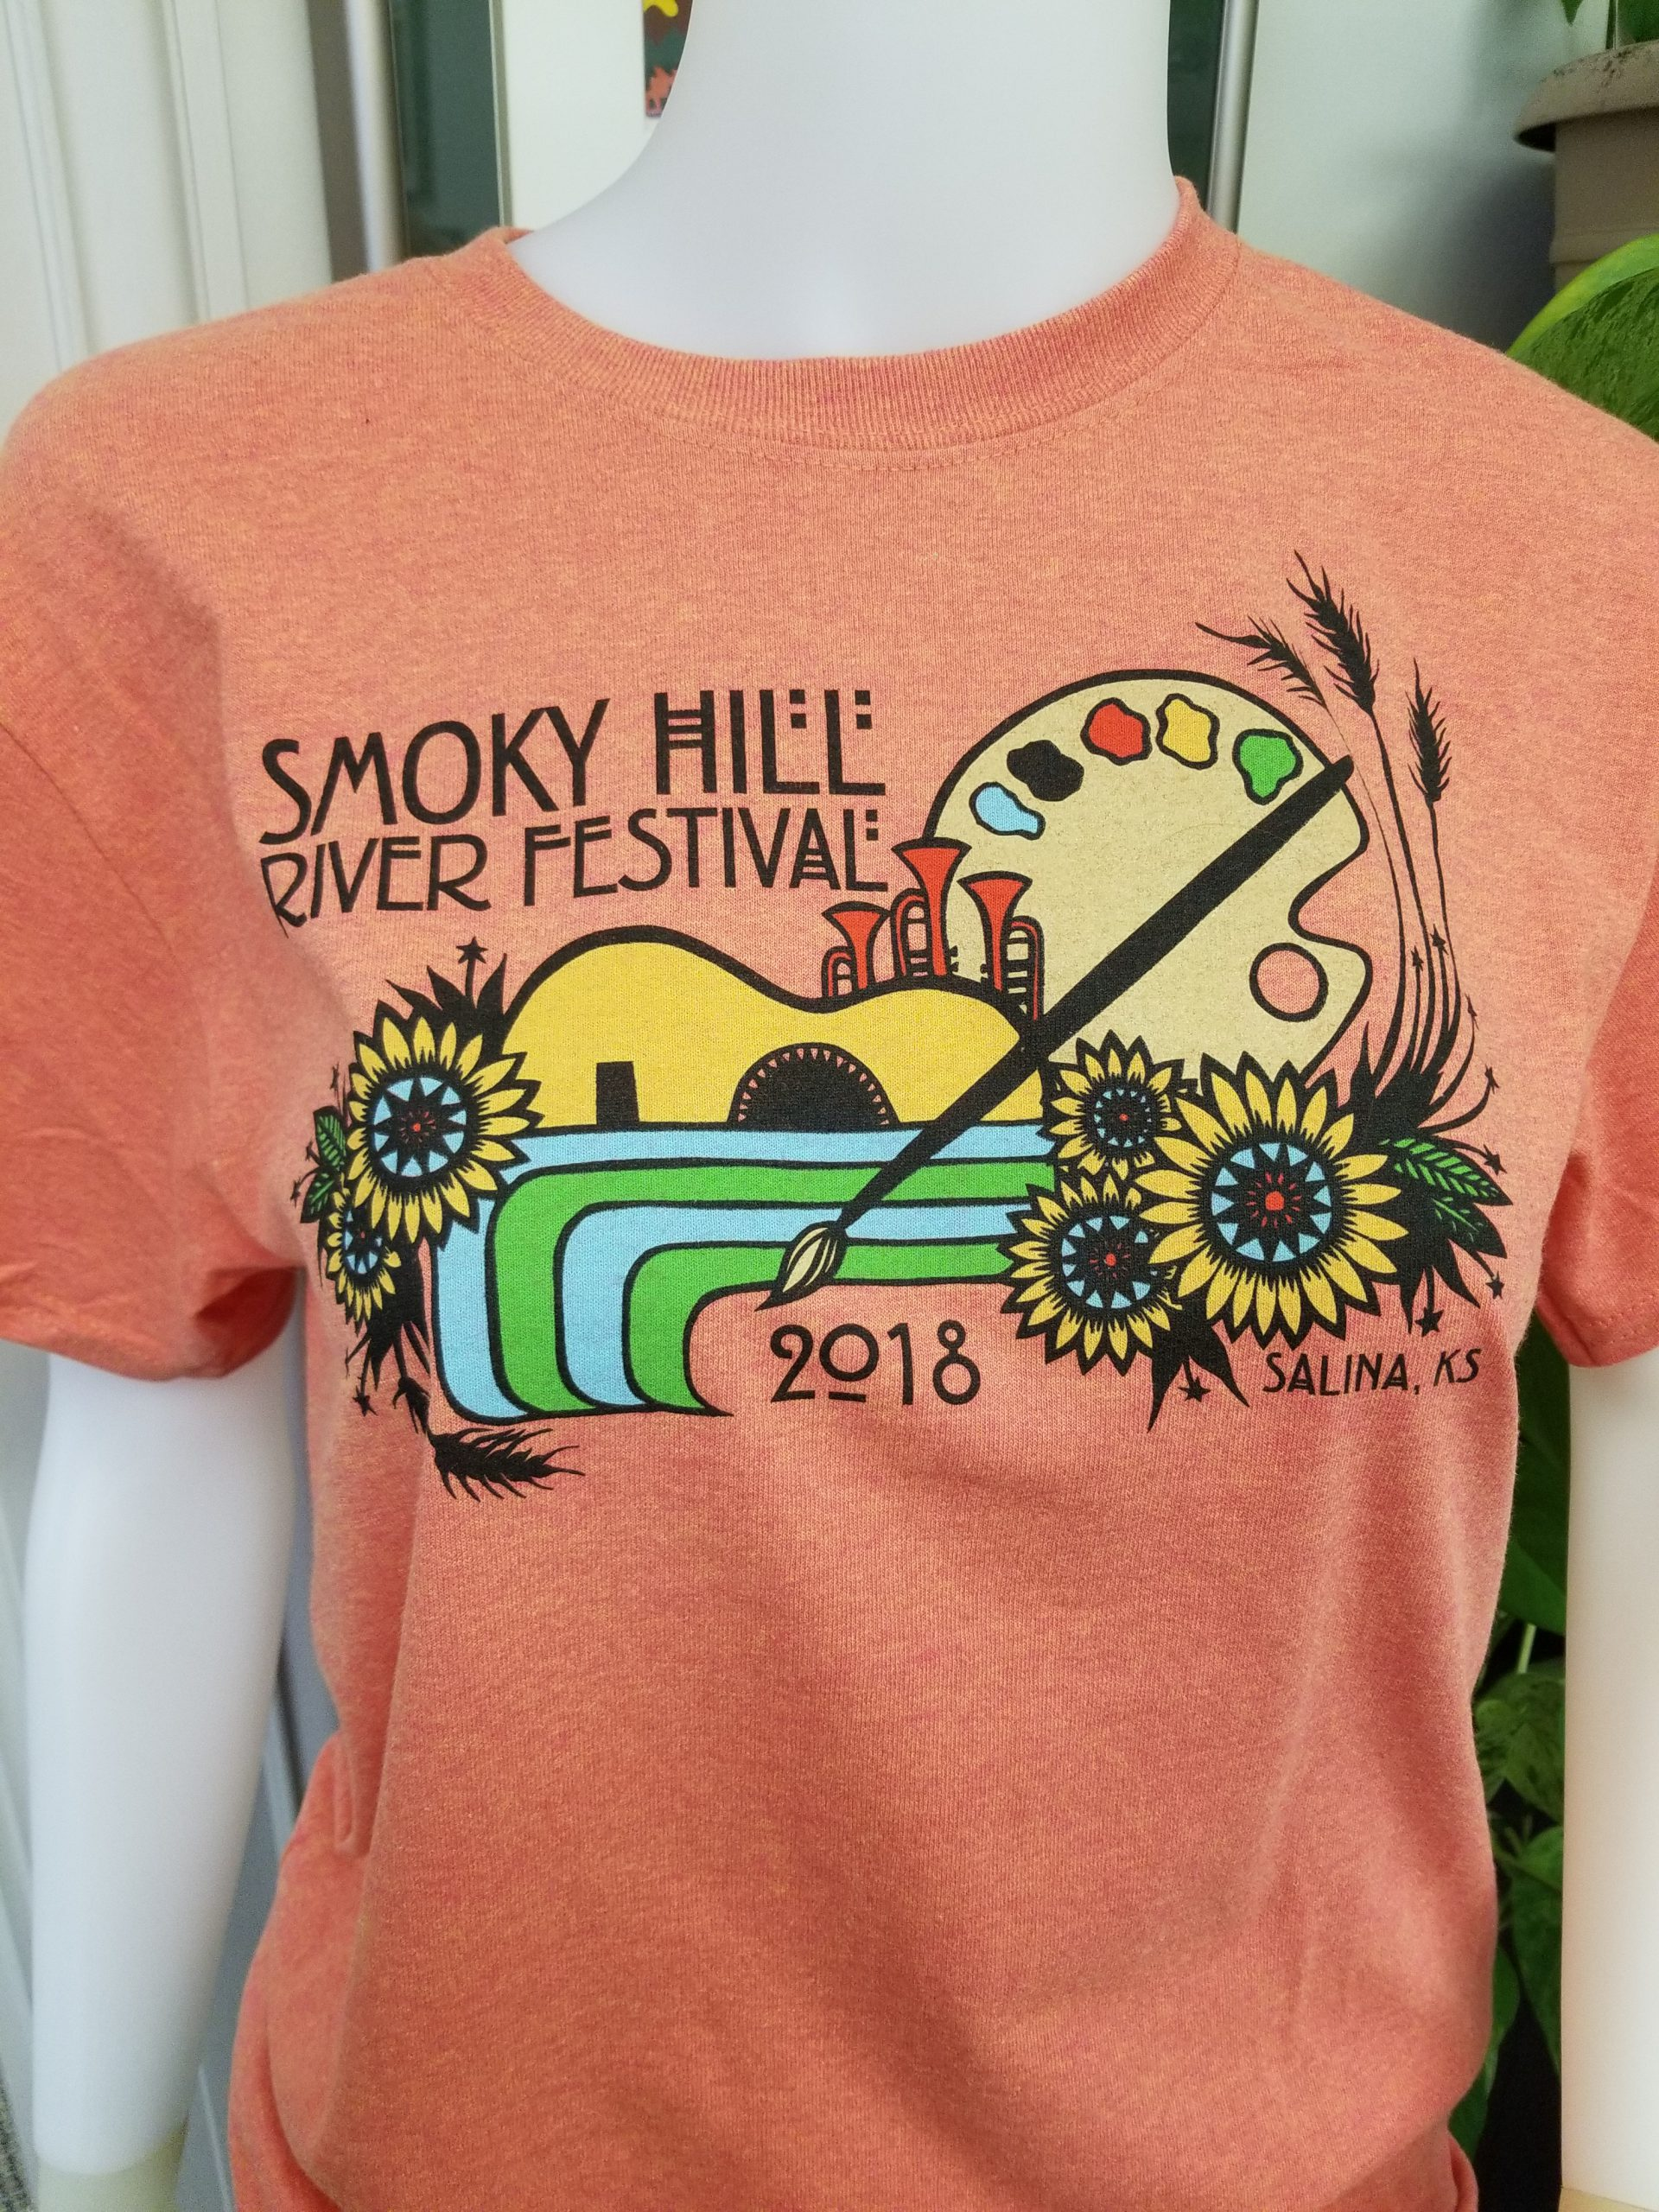 2018 Festival T-Shirt by Angie Pickman, Lawrence, KS